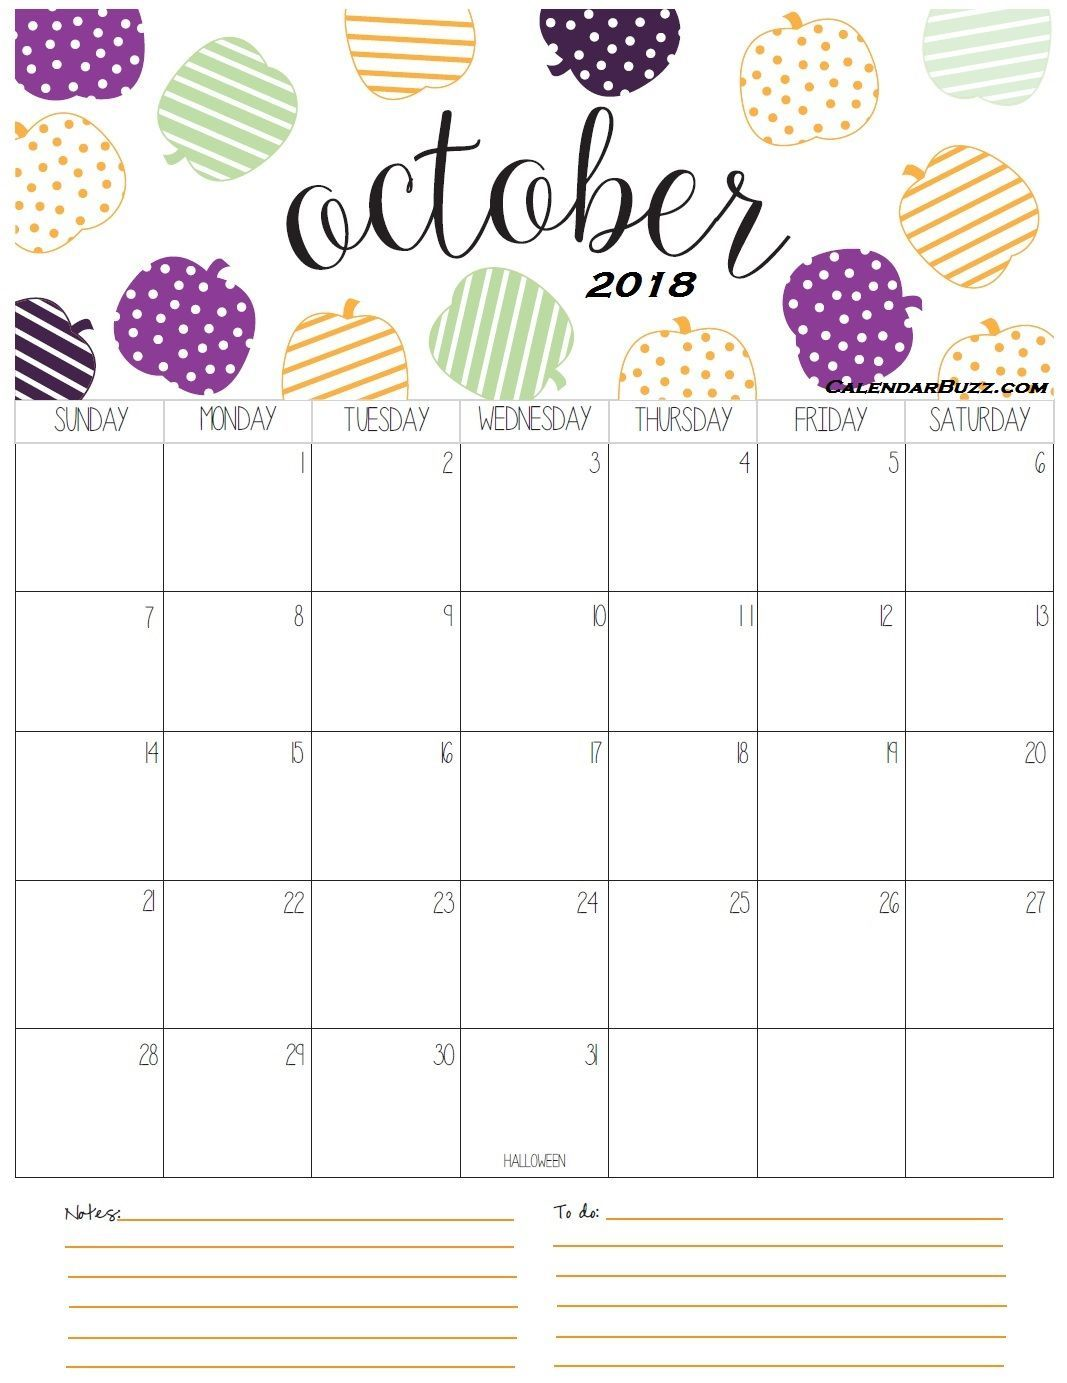 October 2018 Calendar Http Moussyusa Com Printable Calendar 2018